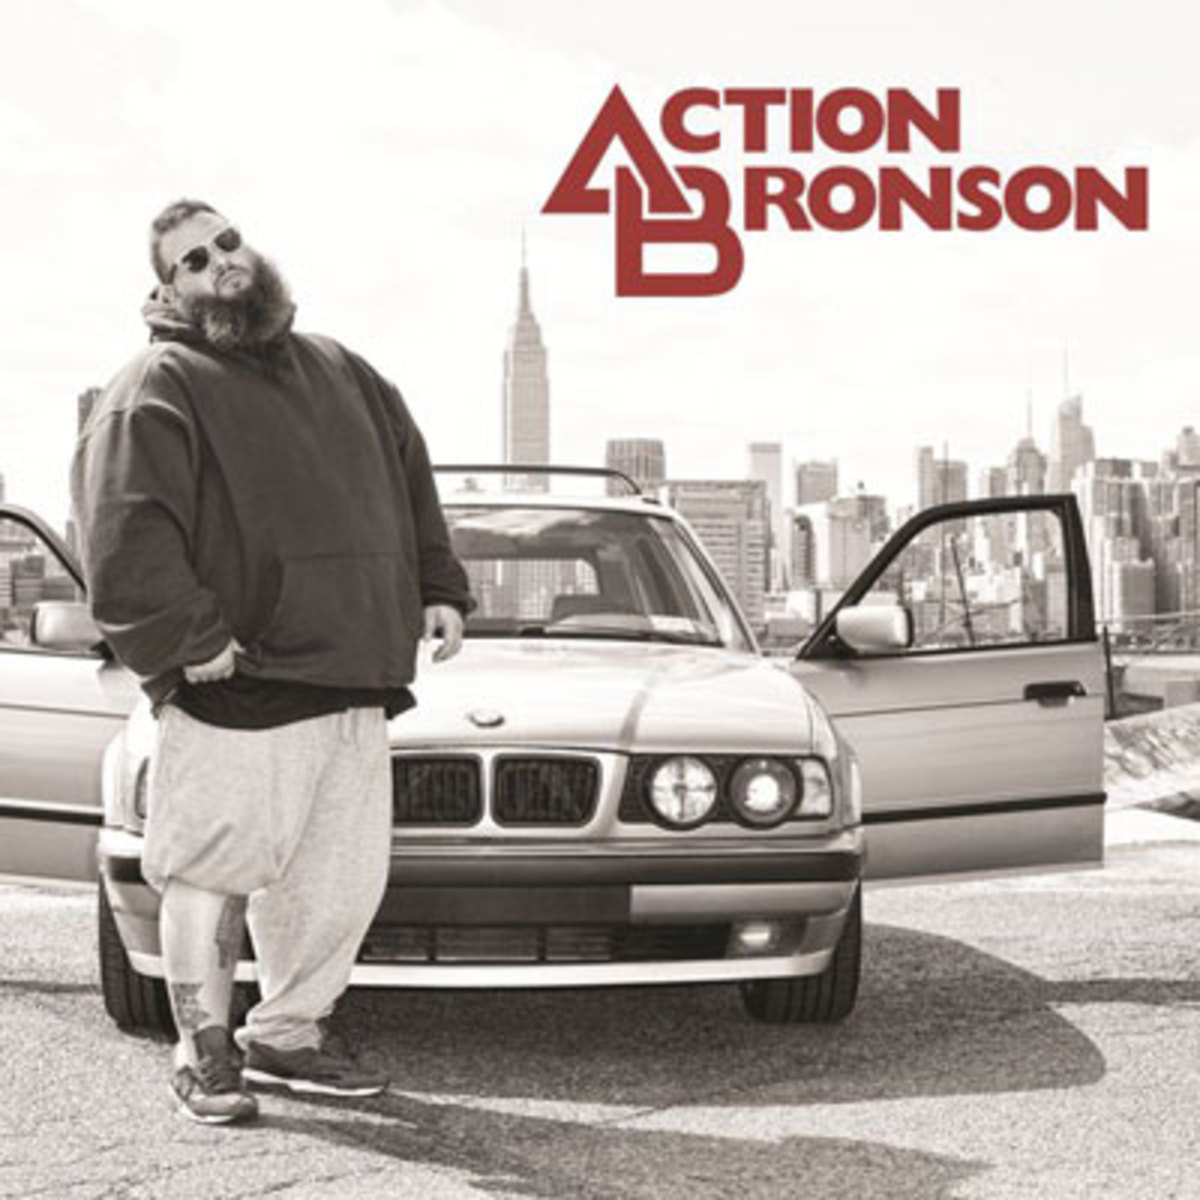 actionbronson-rockers.jpg